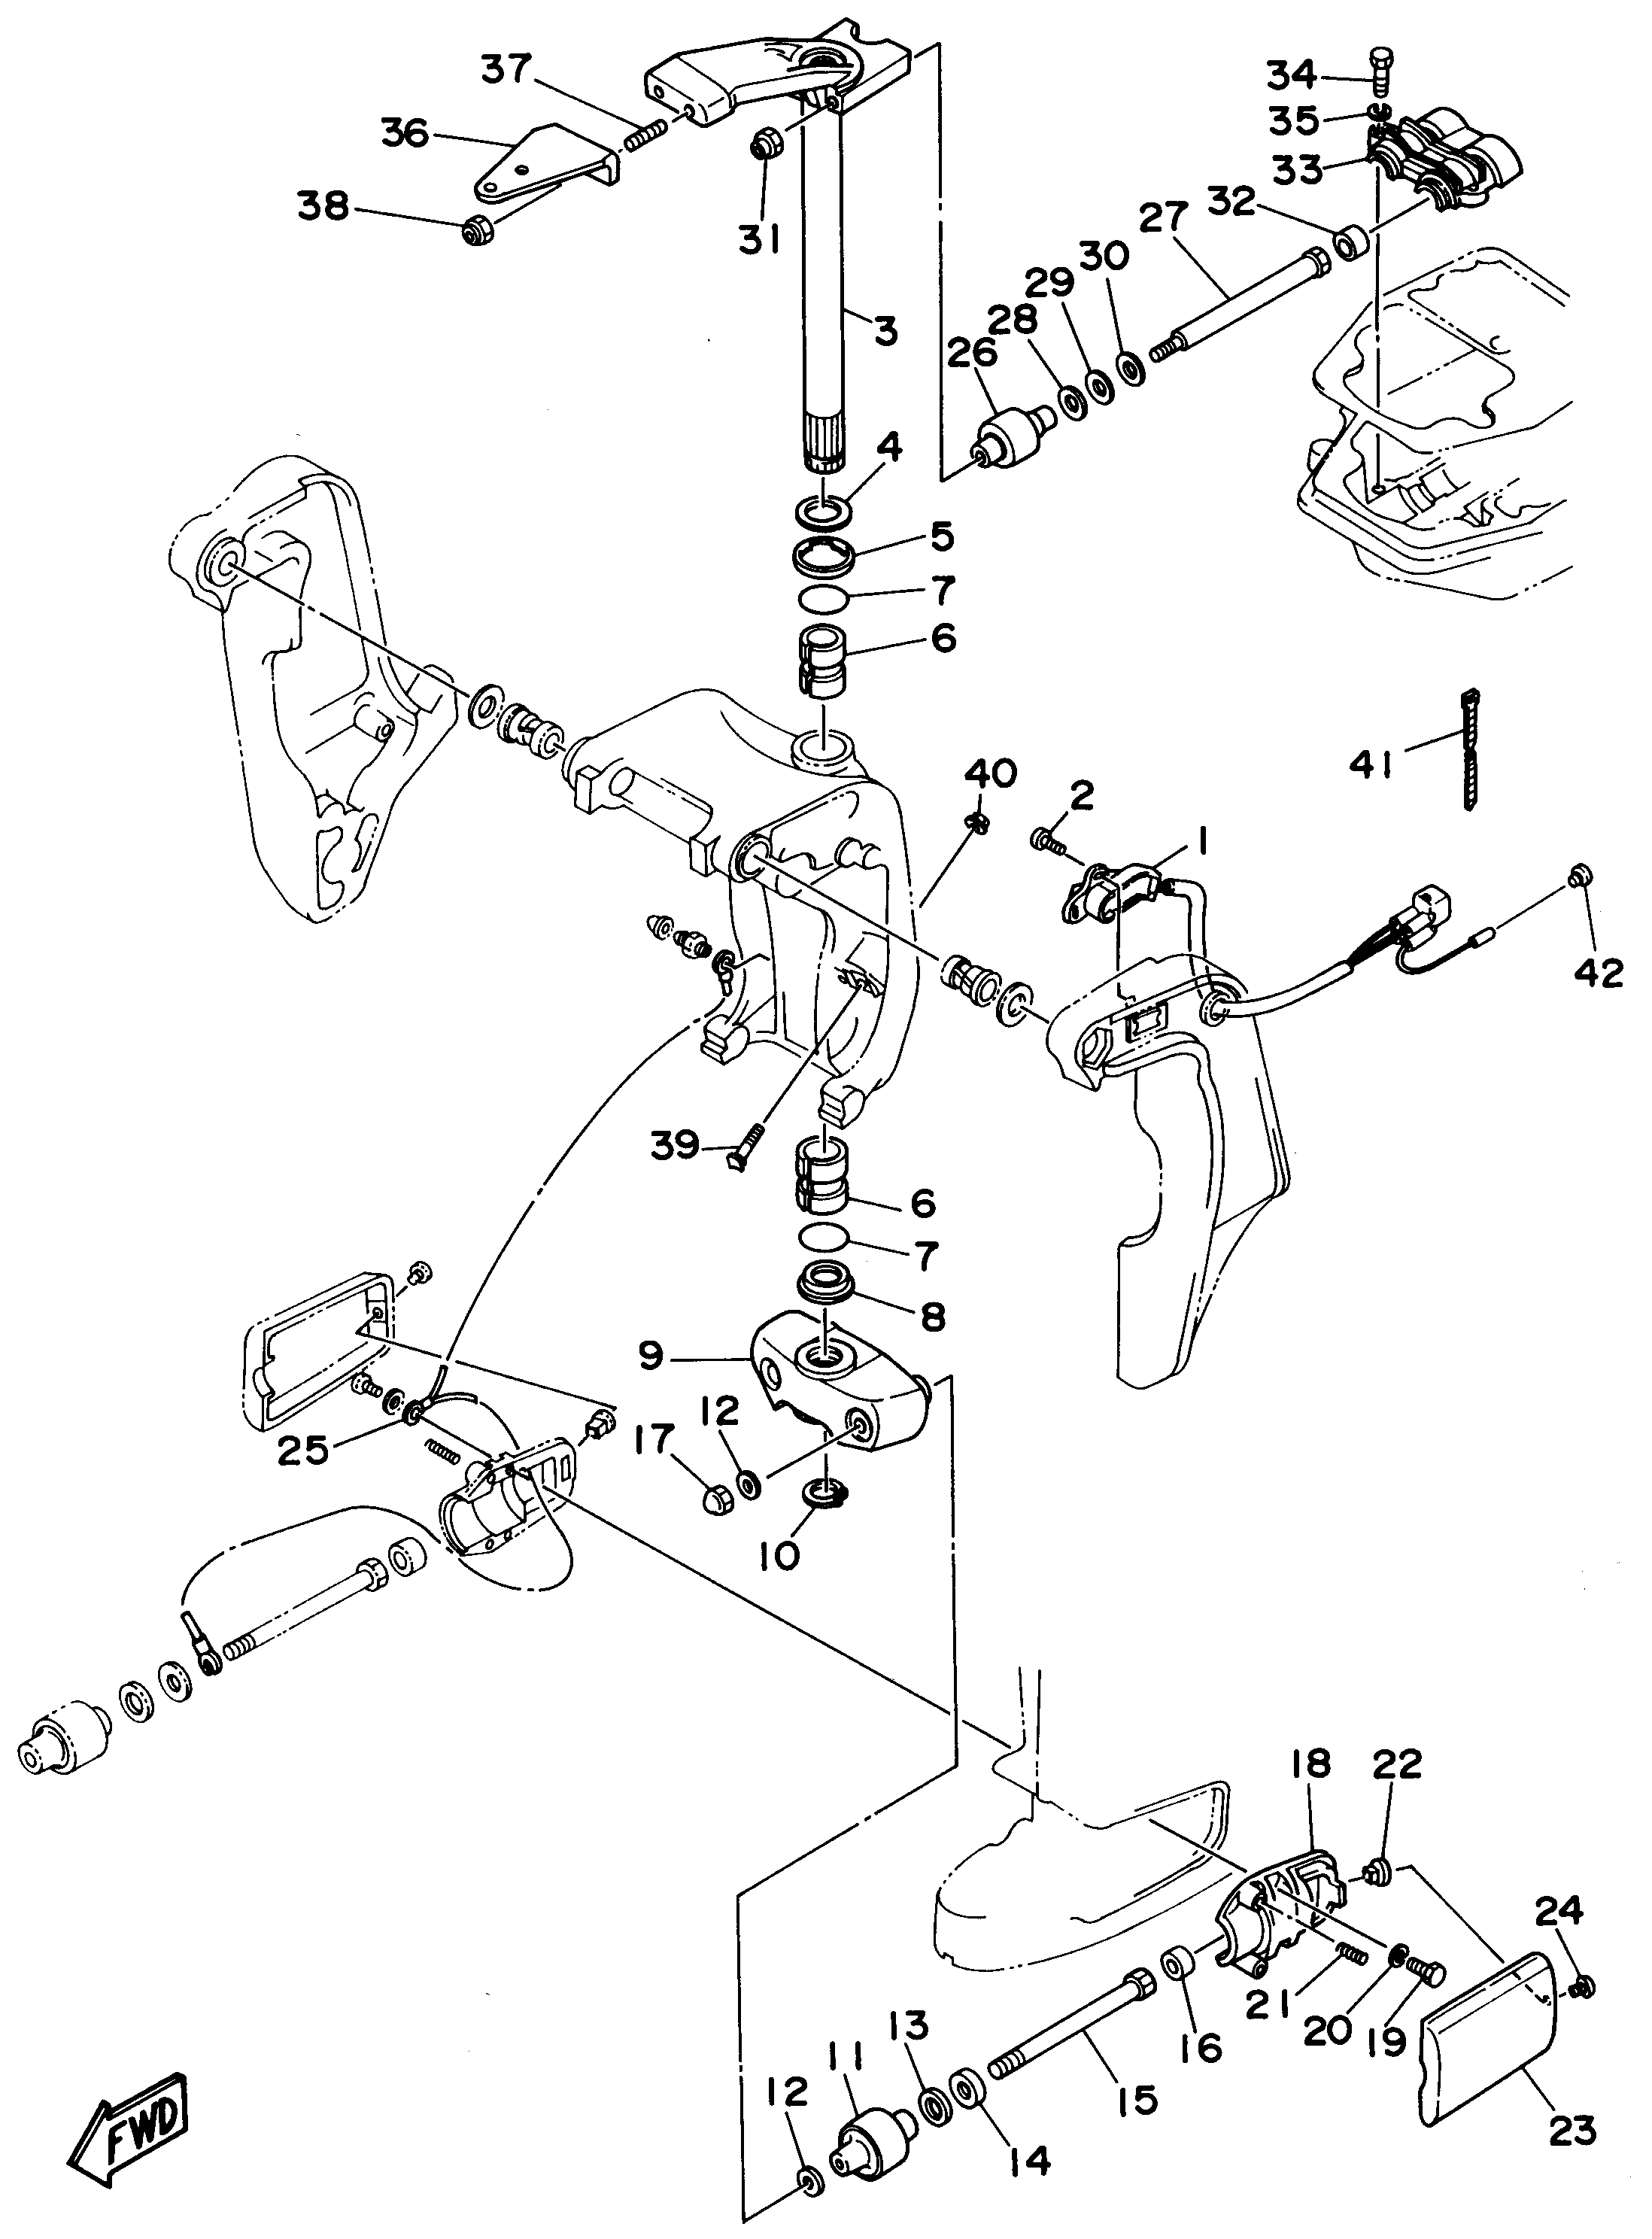 johnson 9.9 outboard wiring diagram